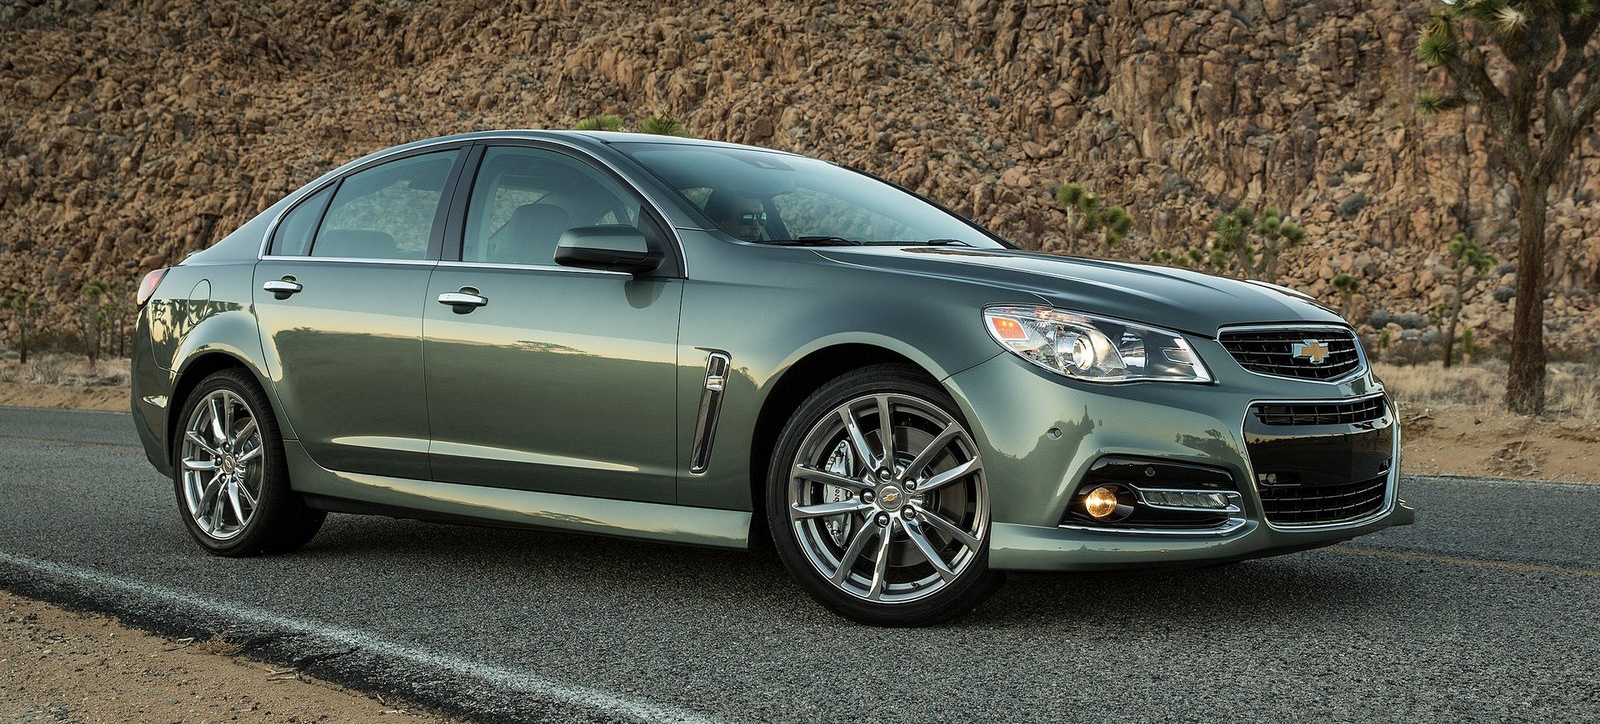 2015 navy green chevrolet ss pictures mods upgrades wallpaper. Black Bedroom Furniture Sets. Home Design Ideas